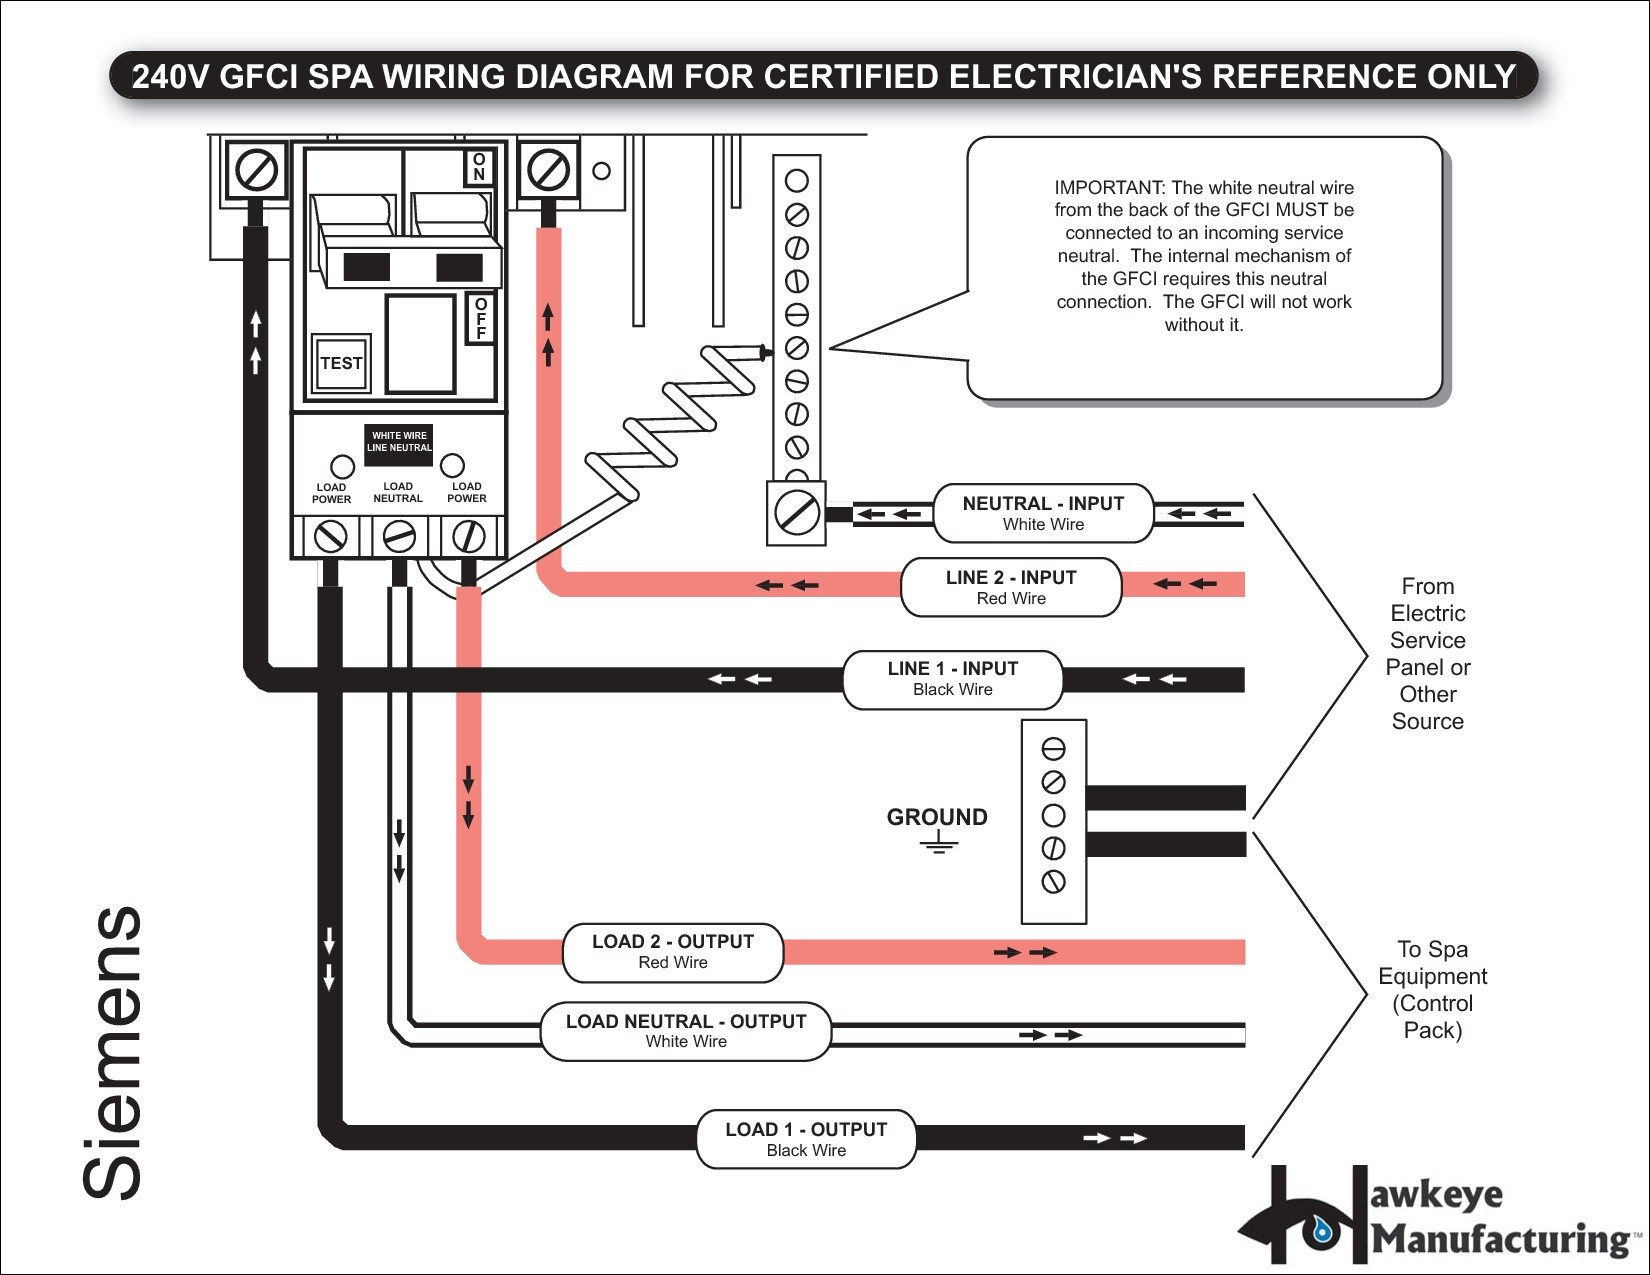 220v hot tub wiring diagram gallery wiring diagram sample. Black Bedroom Furniture Sets. Home Design Ideas